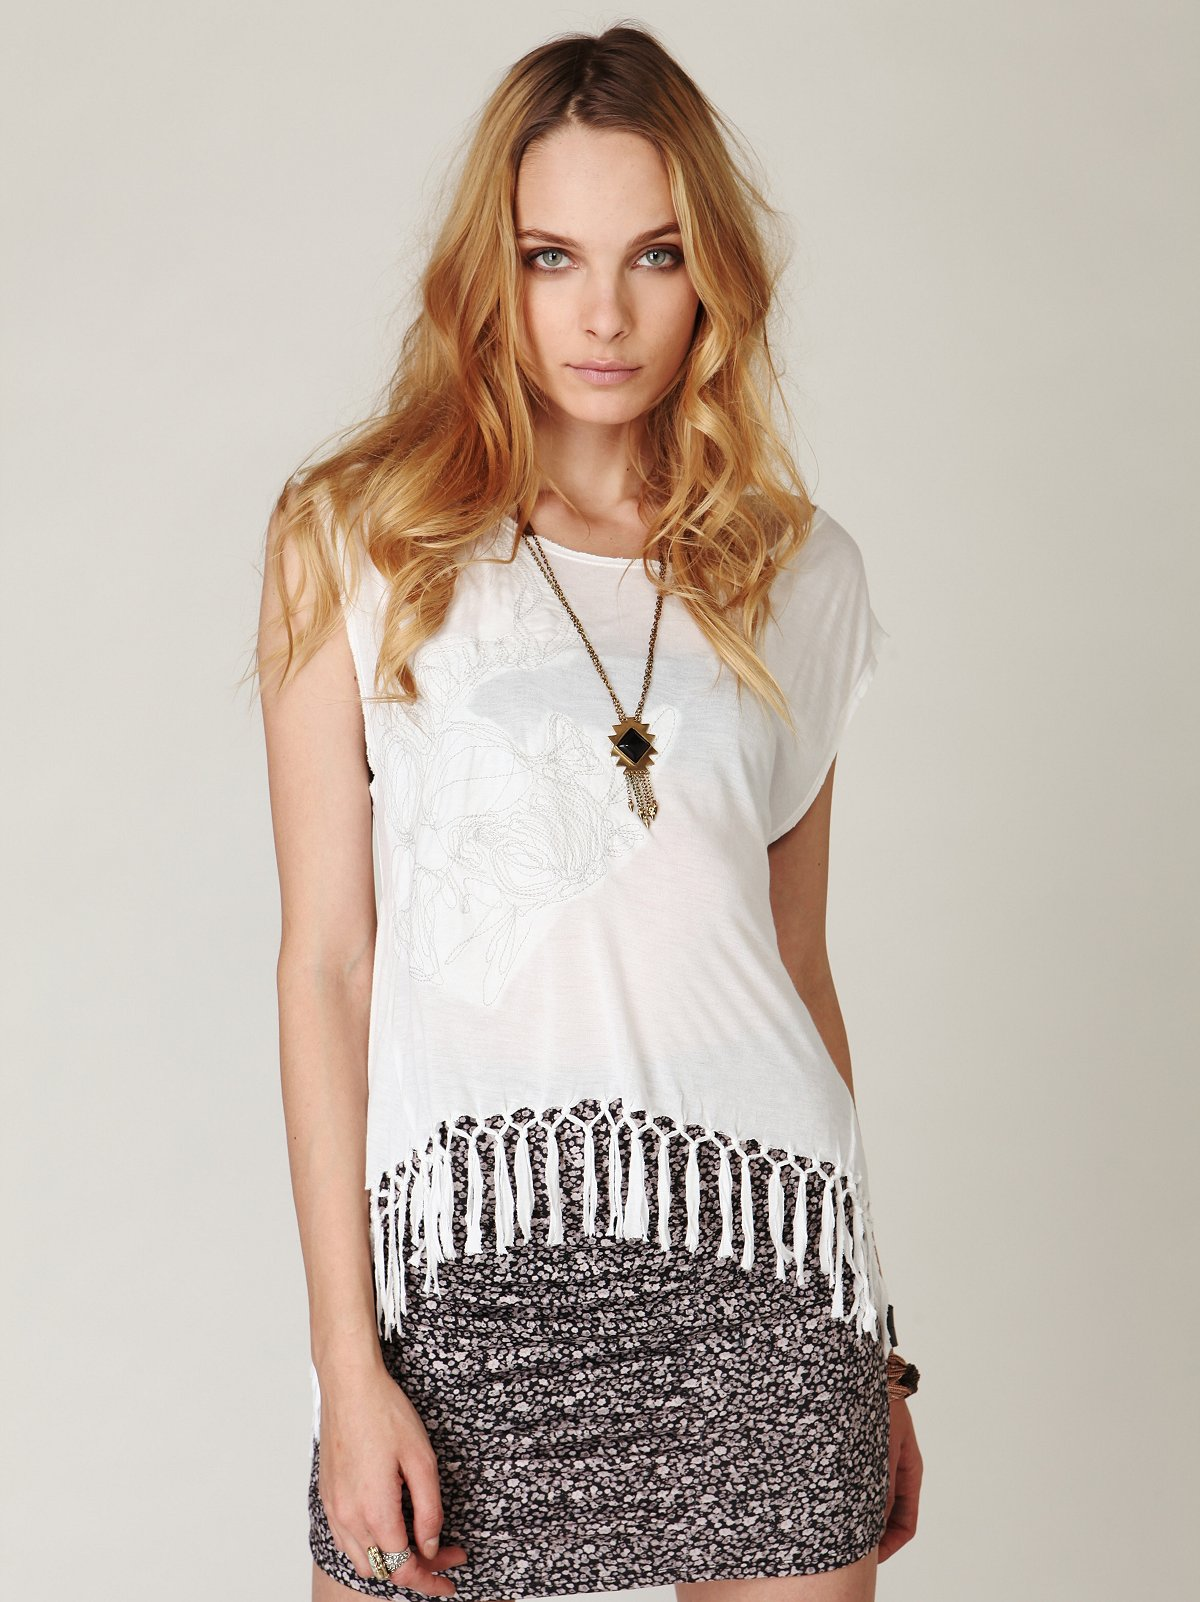 Fearless Fringe Graphic Tee